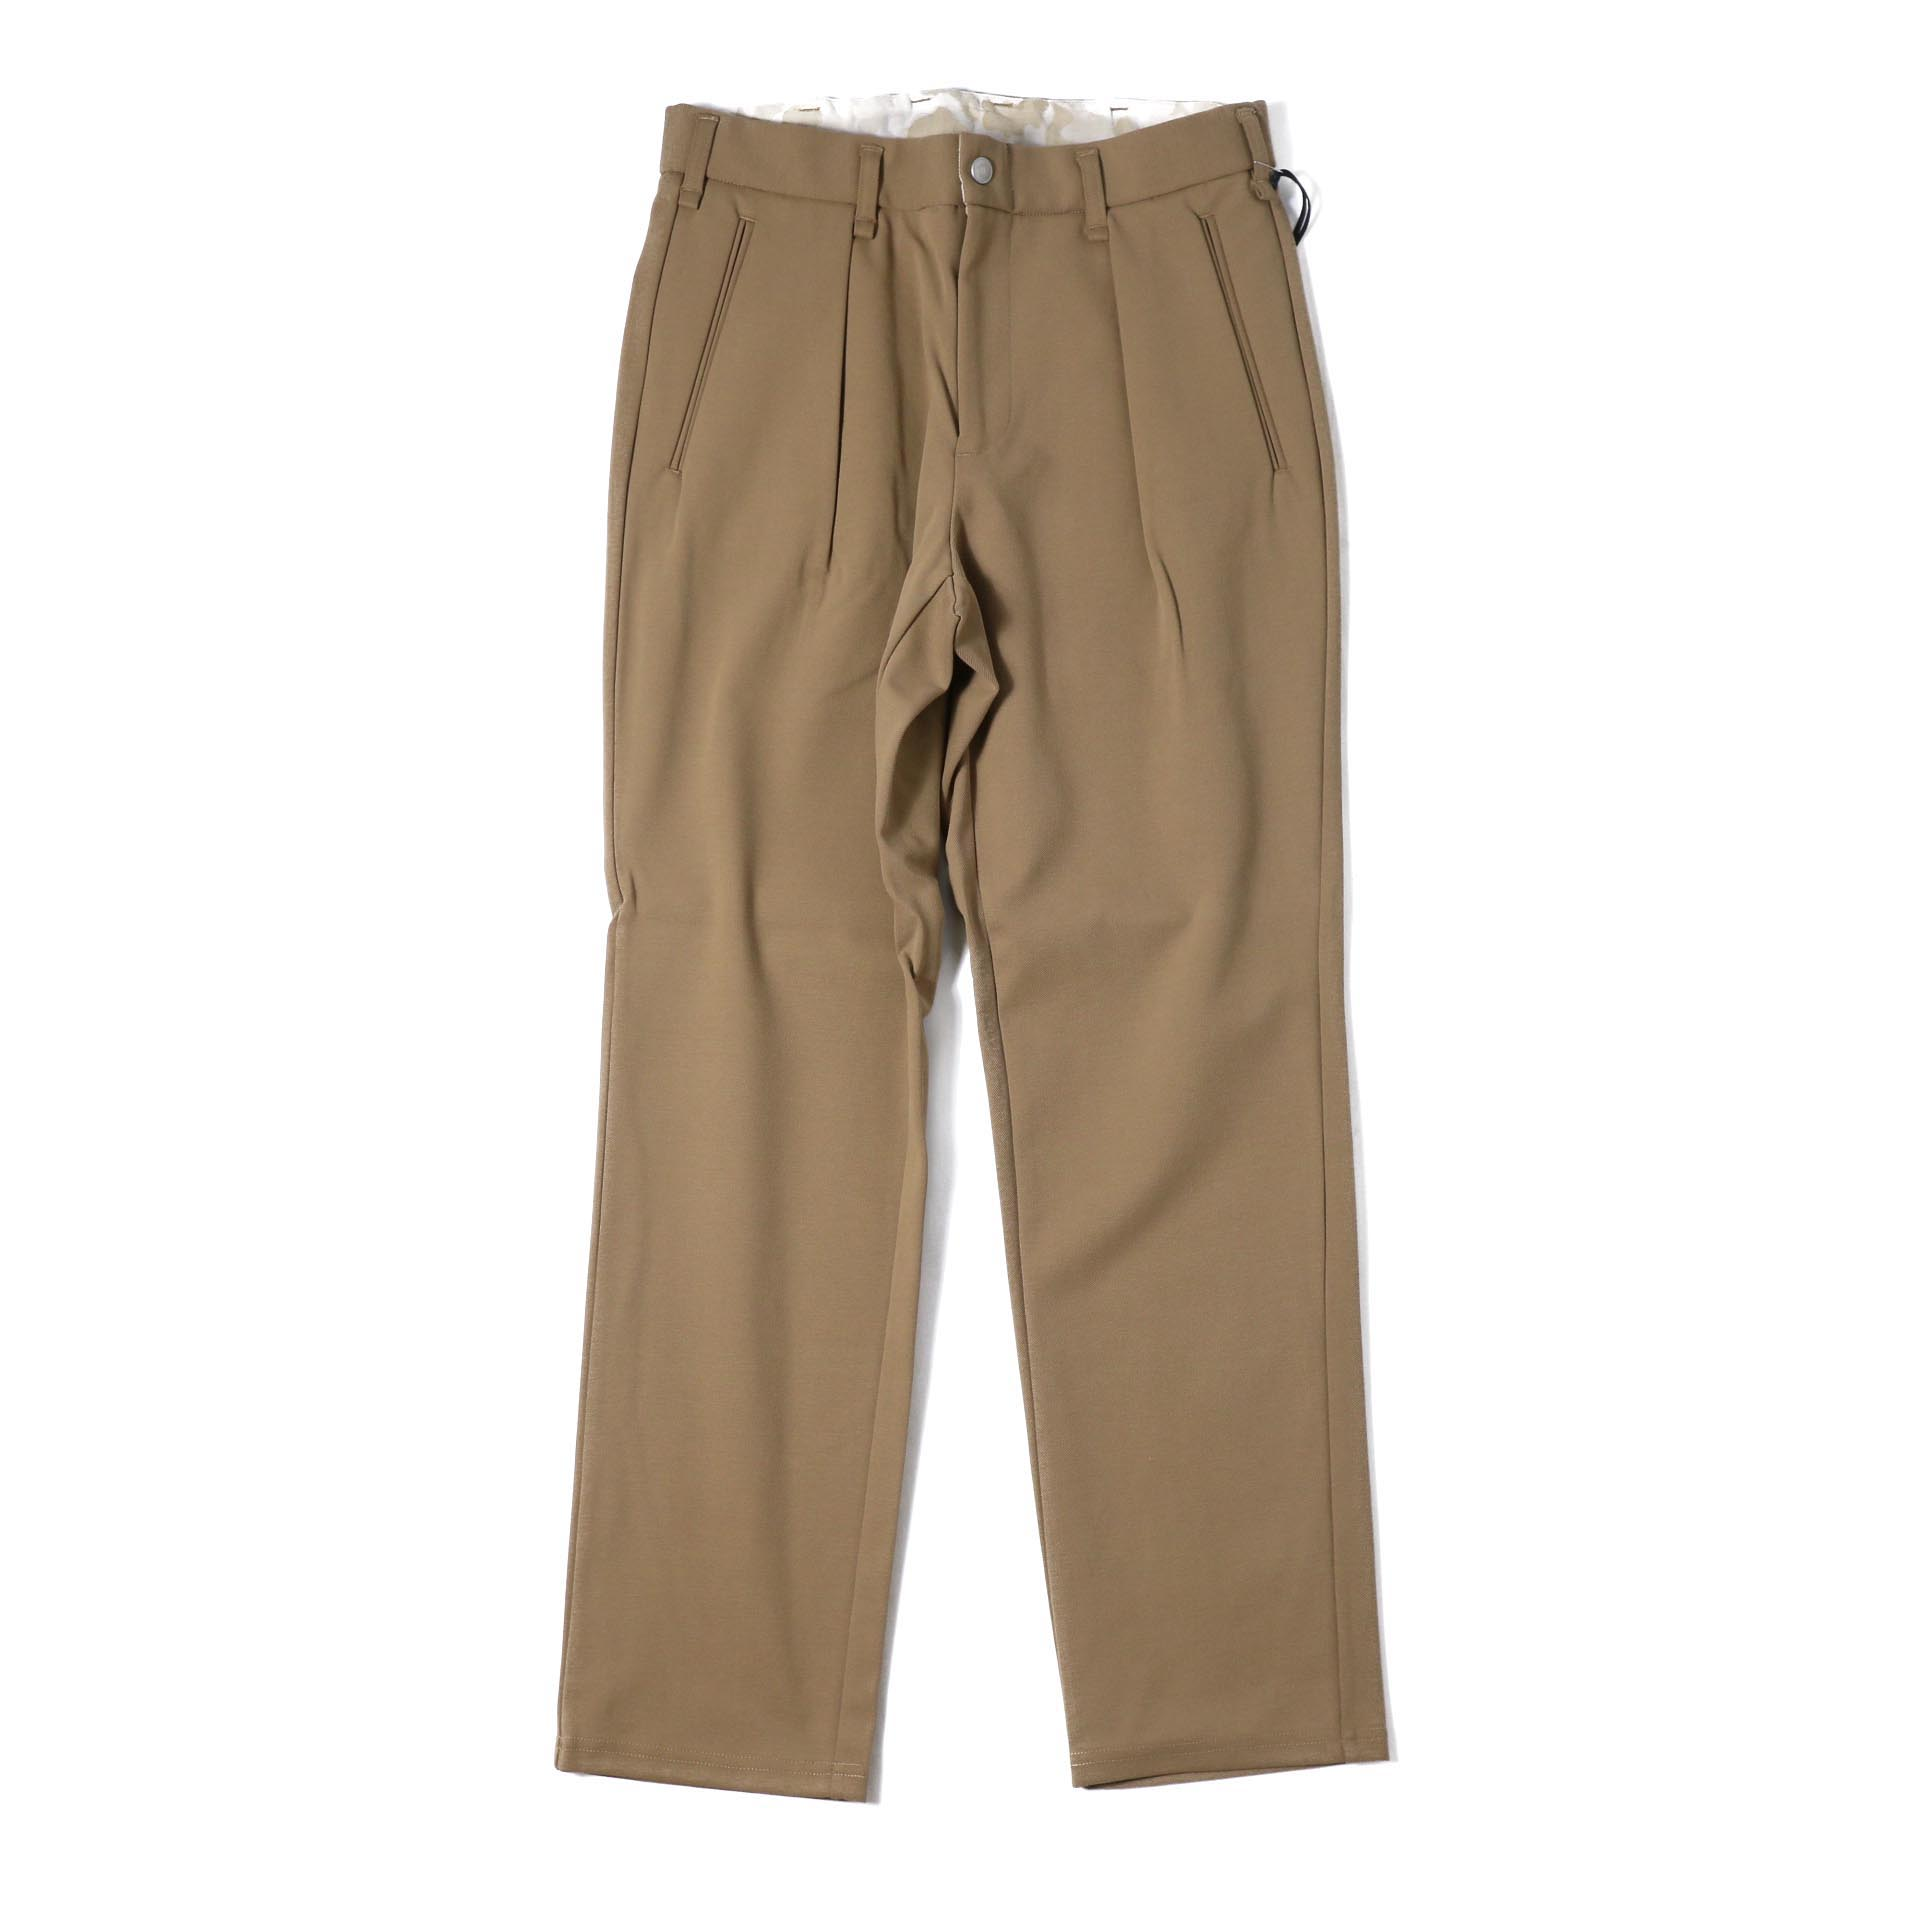 CURLY / HOXTON TROUSERS -BEIGE